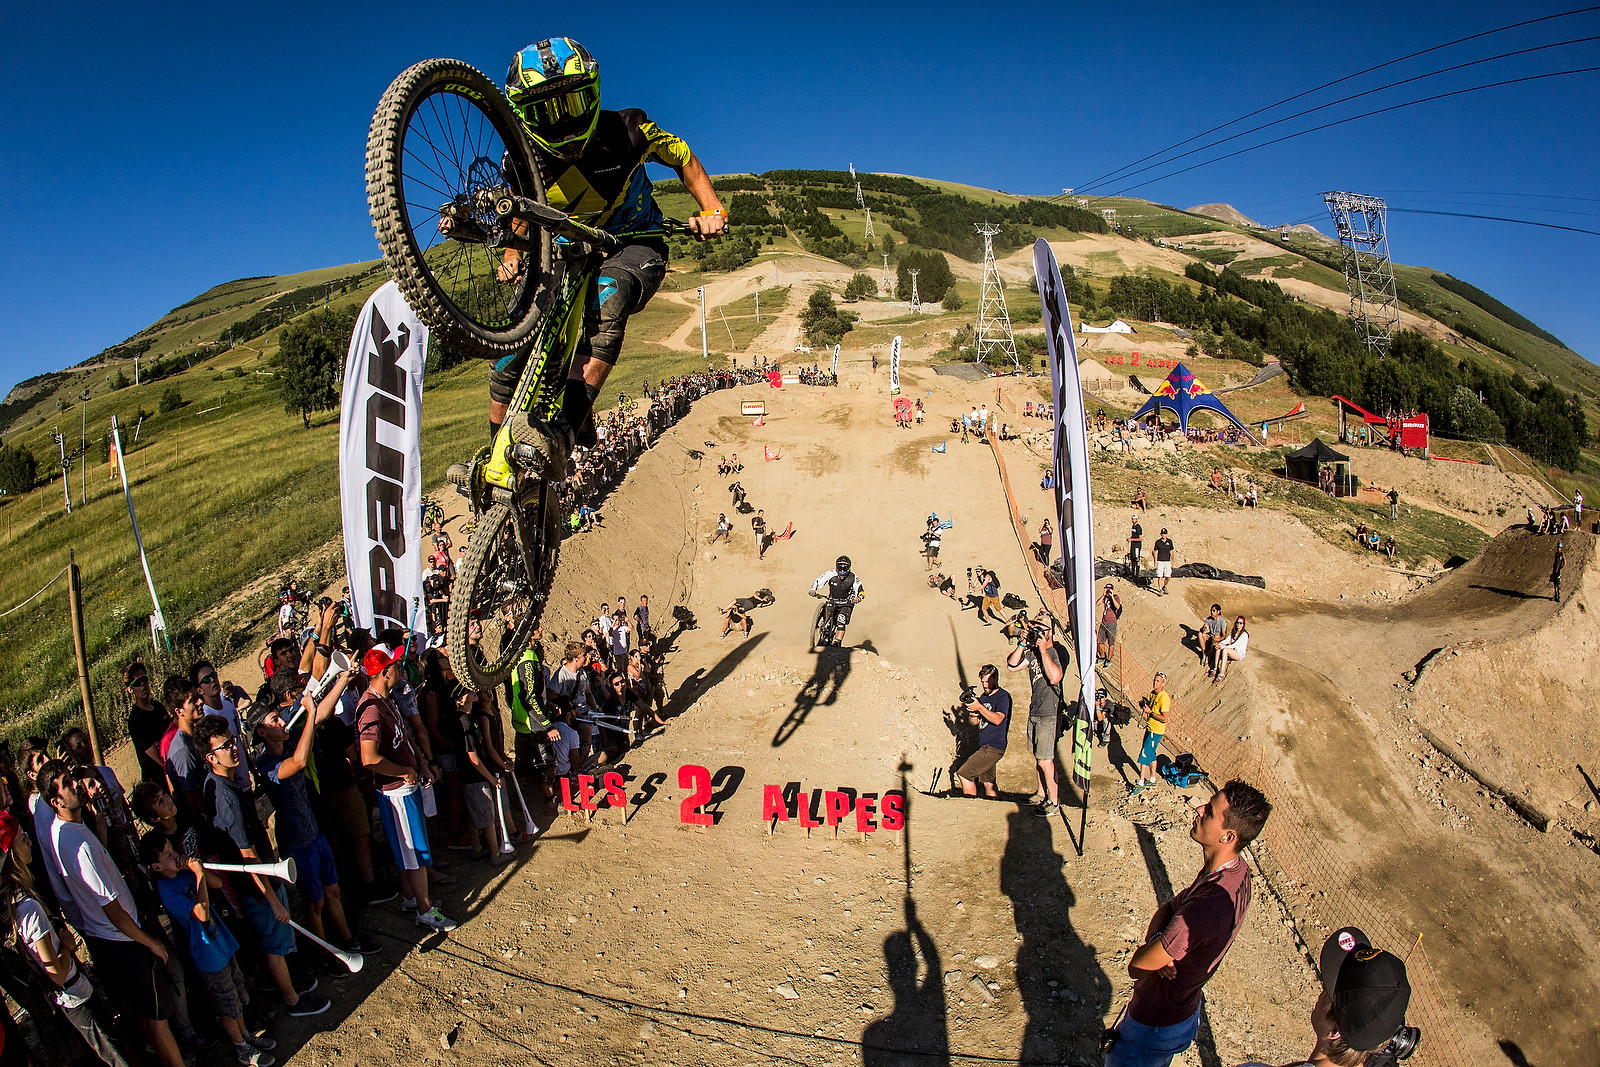 Eddie Masters, Whip Off European Champs, Crankworx L2A - Whip Off European Champs, Crankworx L2A - Mountain Biking Pictures - Vital MTB